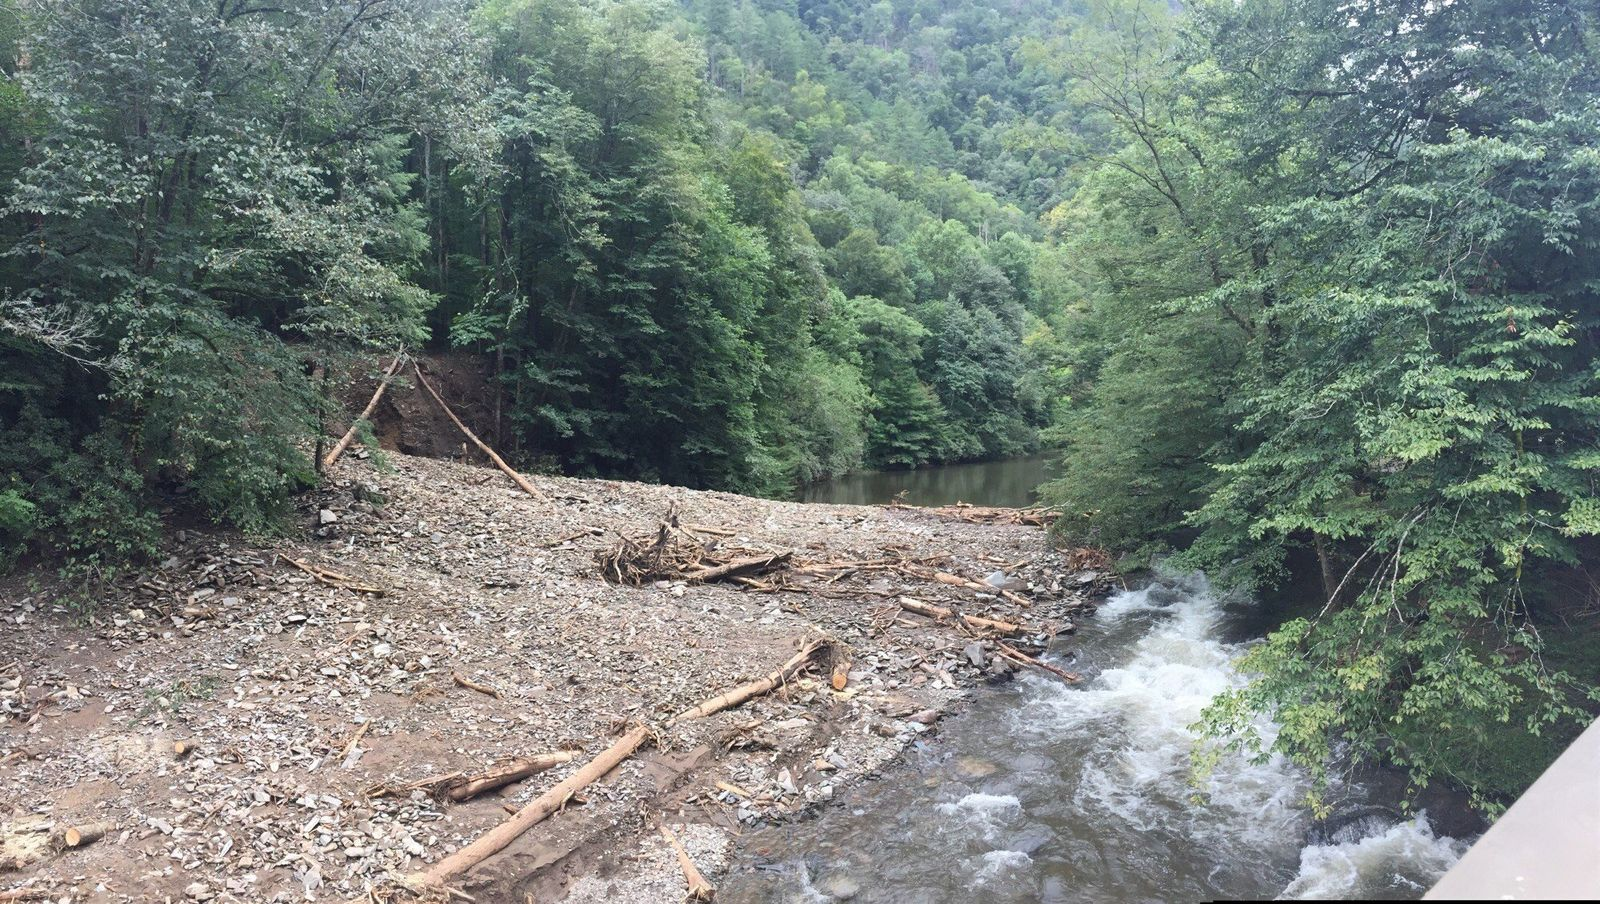 Due to hazardous conditions in the Nantahala Gorge from multiple landslides, the U.S. Forest Service is issuing an Emergency Closure Order prohibiting access to the Nantahala River. { }Photo credit: North Carolina Forest Service